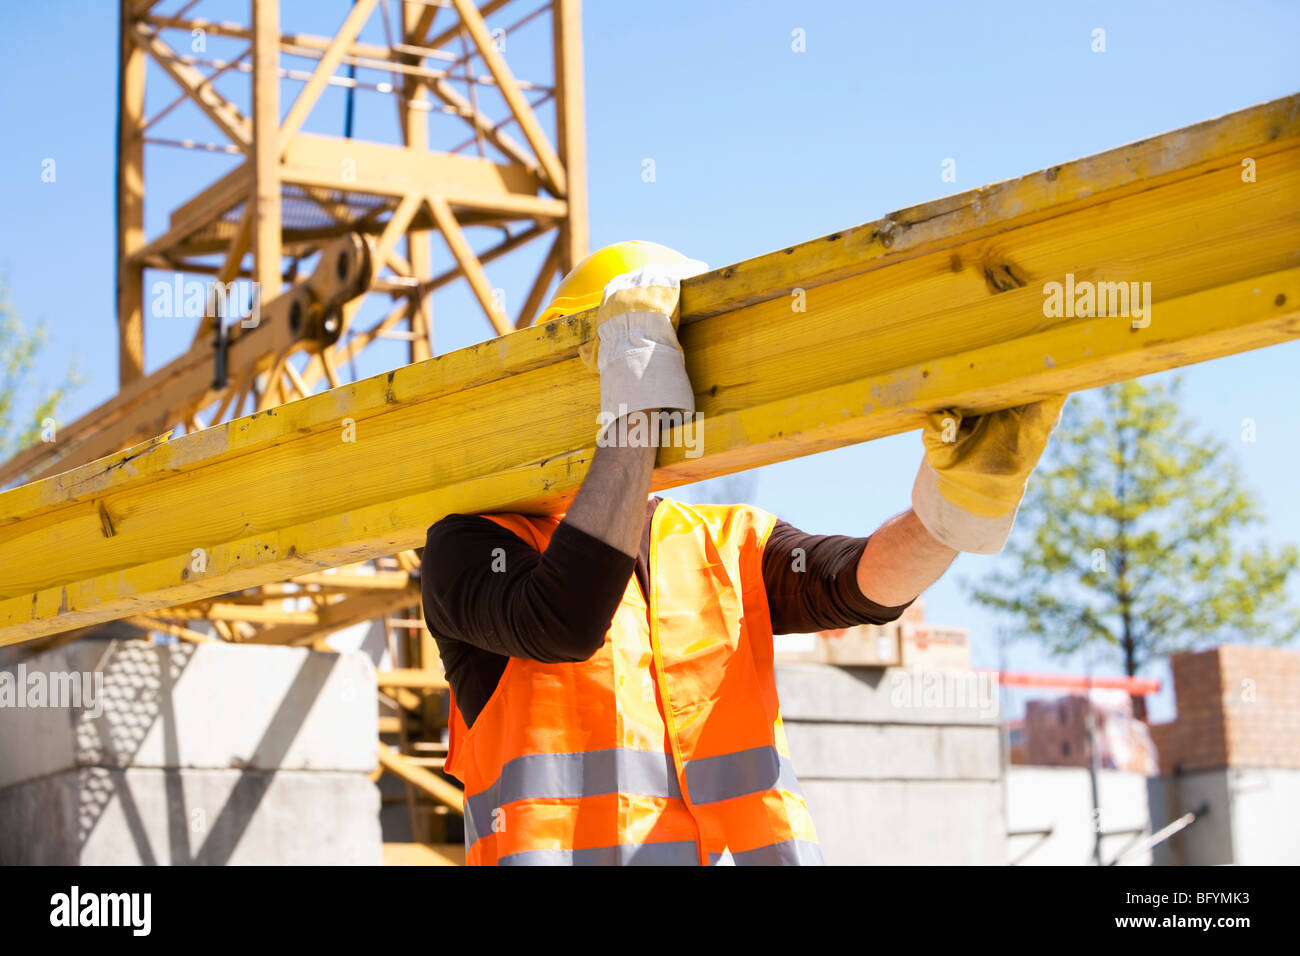 construction worker carrying wooden plank - Stock Image